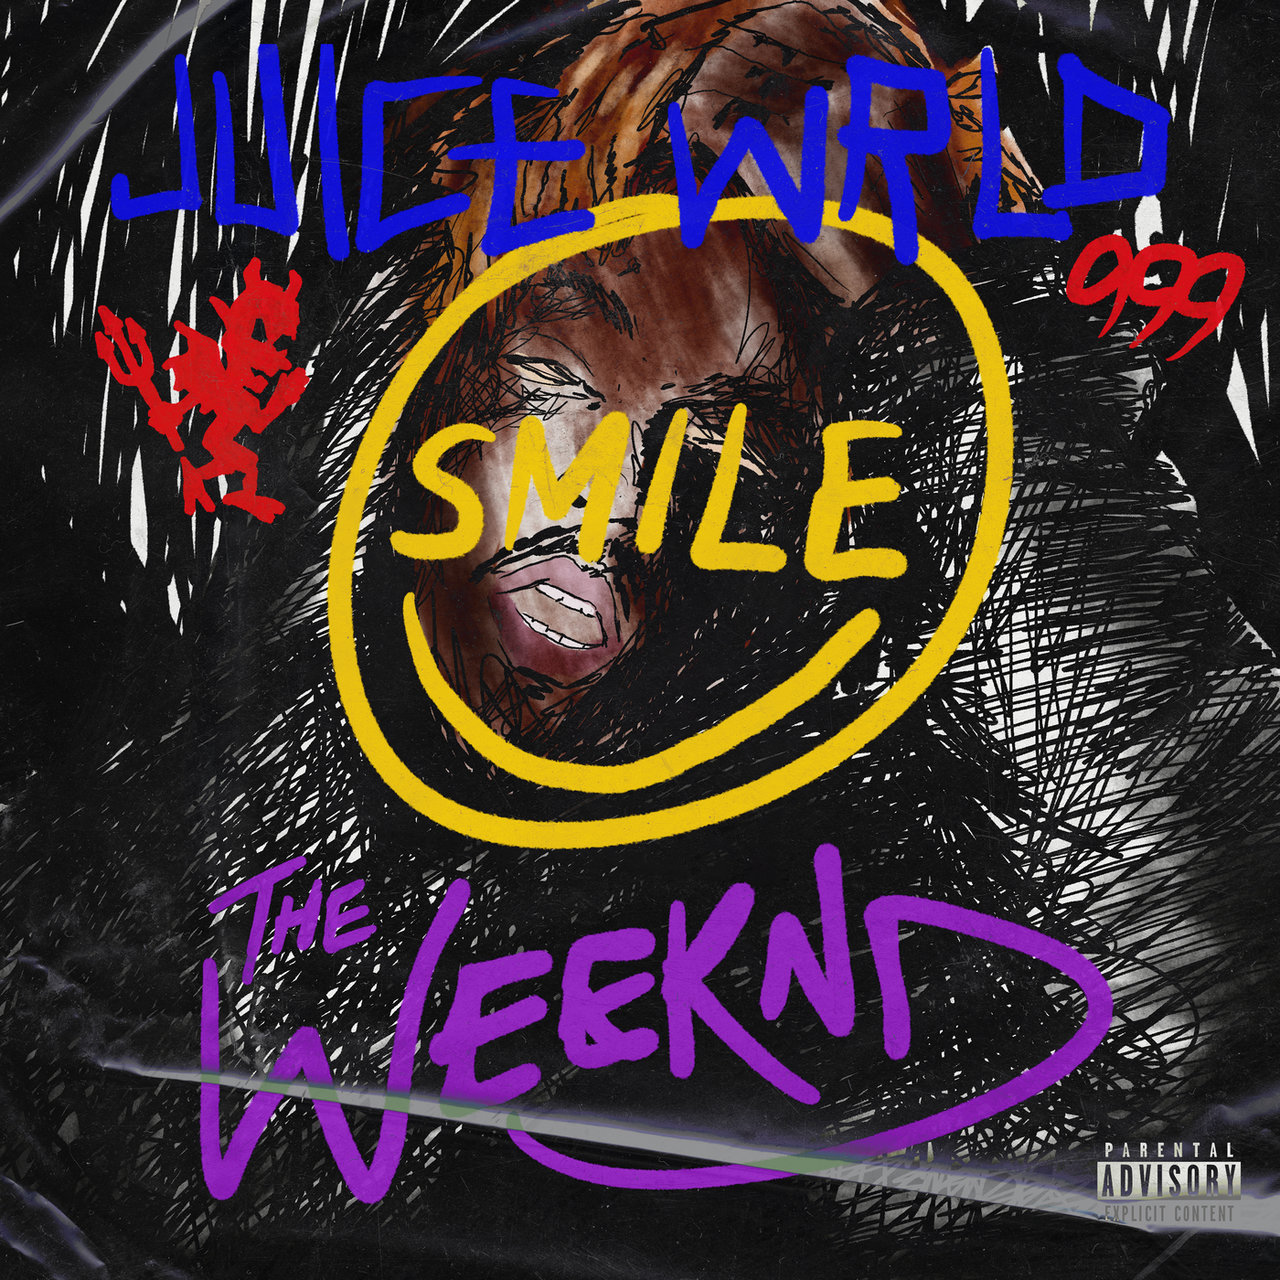 Juice Wrld - Smile (ft. The Weeknd) (Cover)